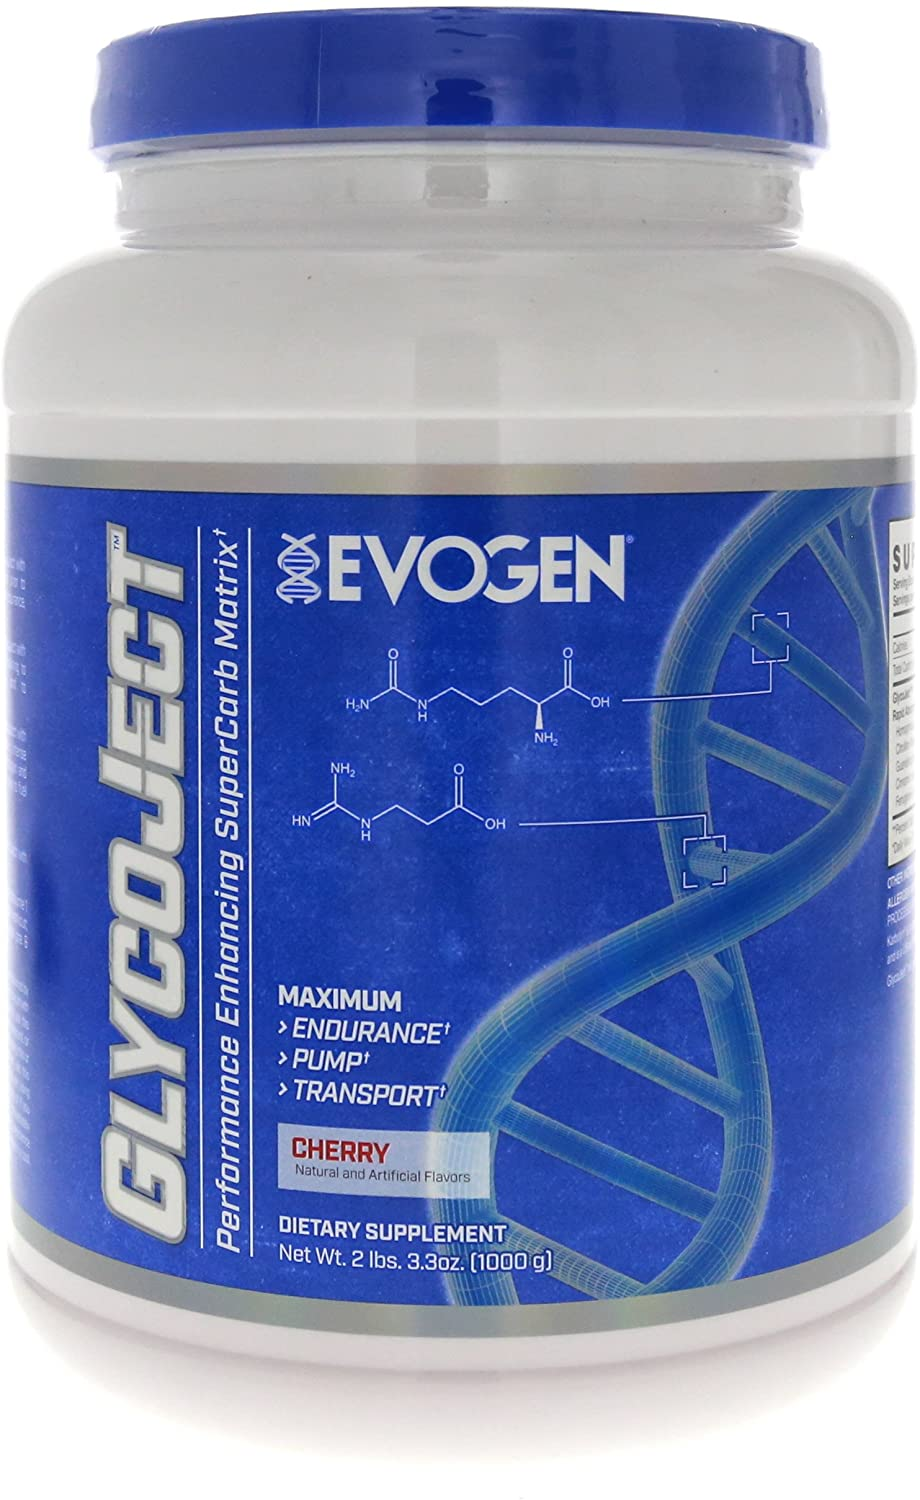 Evogen GlycoJect   Extreme Karbolyn® Carbohydrate Powder   Cherry   36 Servings …